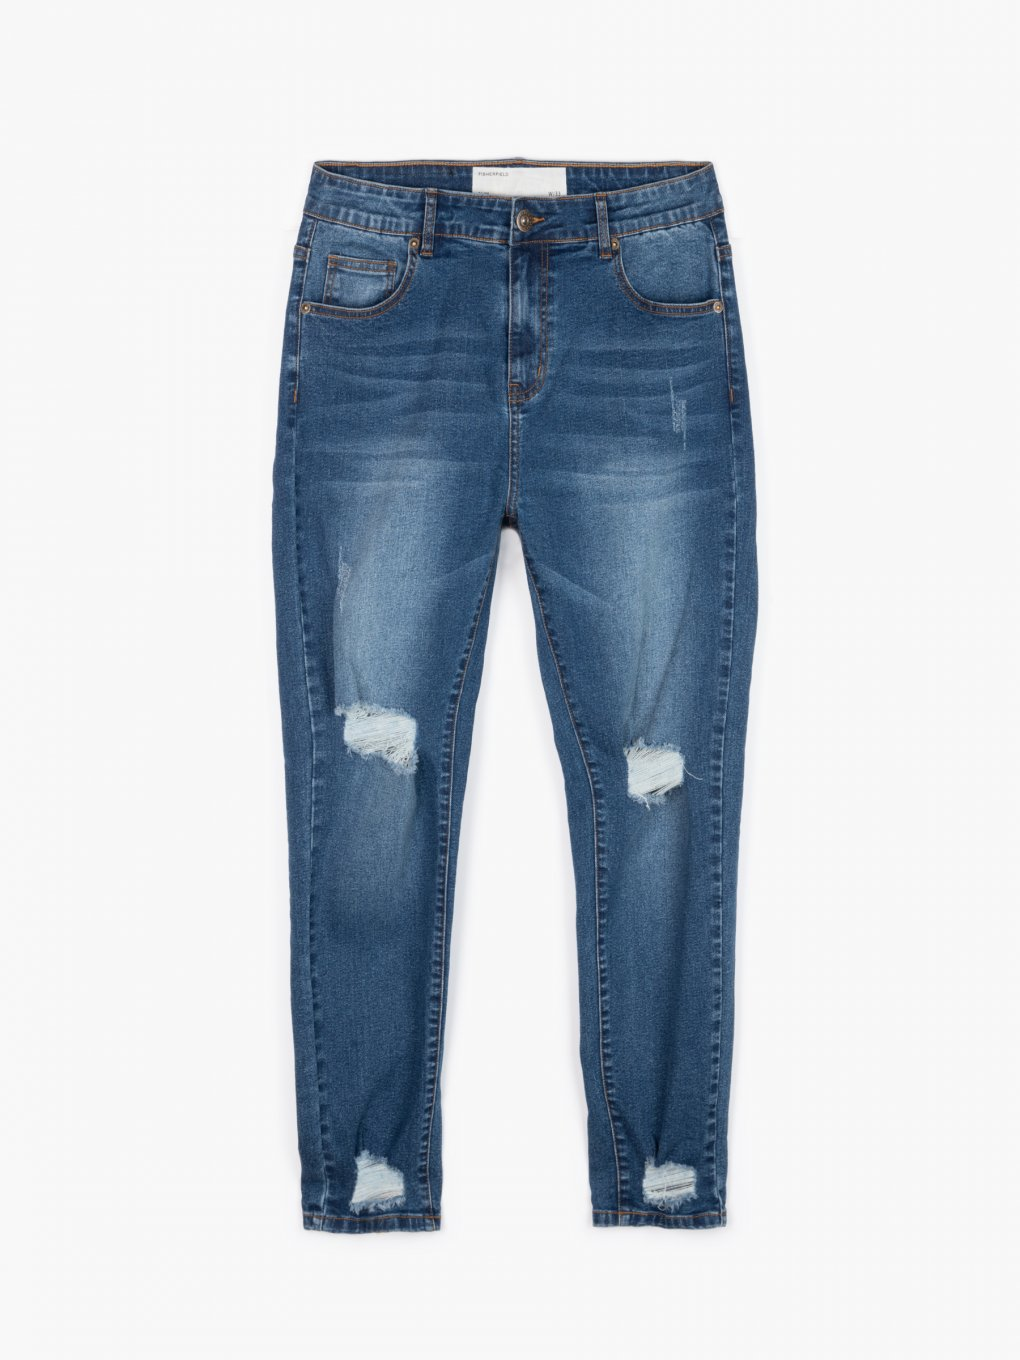 Slim fit jeans with damages